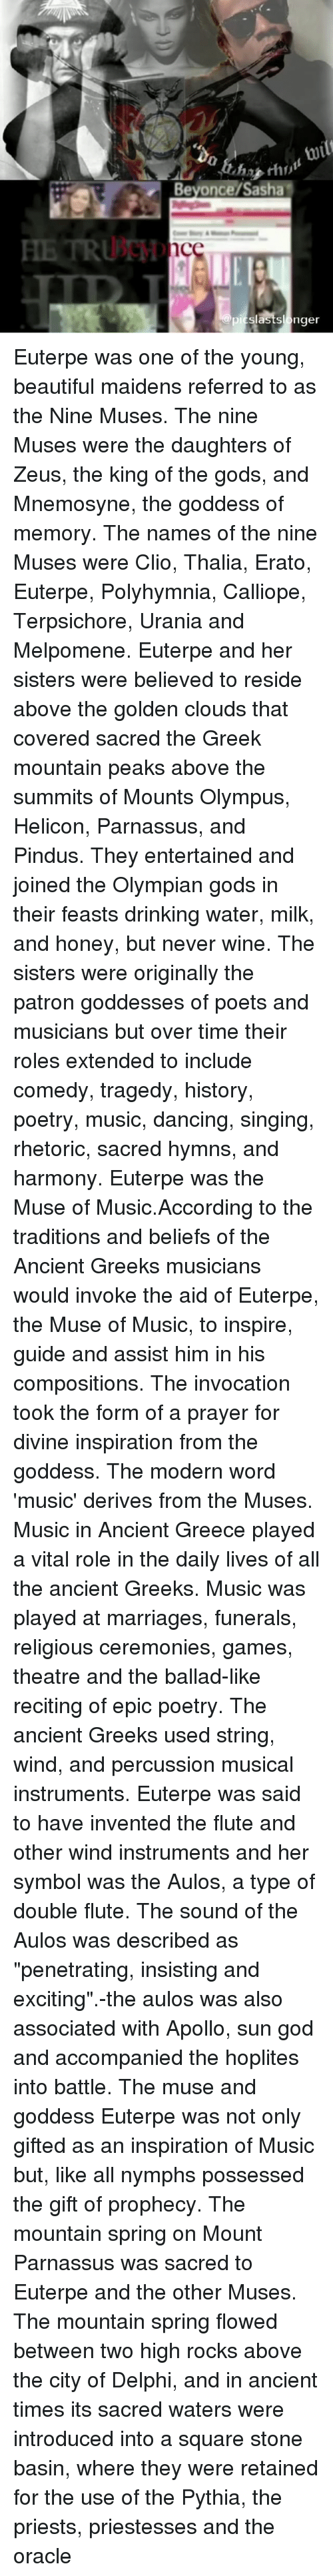 """the muses: Beyonce/Sasha  nce  picslastslonger Euterpe was one of the young, beautiful maidens referred to as the Nine Muses. The nine Muses were the daughters of Zeus, the king of the gods, and Mnemosyne, the goddess of memory. The names of the nine Muses were Clio, Thalia, Erato, Euterpe, Polyhymnia, Calliope, Terpsichore, Urania and Melpomene. Euterpe and her sisters were believed to reside above the golden clouds that covered sacred the Greek mountain peaks above the summits of Mounts Olympus, Helicon, Parnassus, and Pindus. They entertained and joined the Olympian gods in their feasts drinking water, milk, and honey, but never wine. The sisters were originally the patron goddesses of poets and musicians but over time their roles extended to include comedy, tragedy, history, poetry, music, dancing, singing, rhetoric, sacred hymns, and harmony. Euterpe was the Muse of Music.According to the traditions and beliefs of the Ancient Greeks musicians would invoke the aid of Euterpe, the Muse of Music, to inspire, guide and assist him in his compositions. The invocation took the form of a prayer for divine inspiration from the goddess. The modern word 'music' derives from the Muses. Music in Ancient Greece played a vital role in the daily lives of all the ancient Greeks. Music was played at marriages, funerals, religious ceremonies, games, theatre and the ballad-like reciting of epic poetry. The ancient Greeks used string, wind, and percussion musical instruments. Euterpe was said to have invented the flute and other wind instruments and her symbol was the Aulos, a type of double flute. The sound of the Aulos was described as """"penetrating, insisting and exciting"""".-the aulos was also associated with Apollo, sun god and accompanied the hoplites into battle. The muse and goddess Euterpe was not only gifted as an inspiration of Music but, like all nymphs possessed the gift of prophecy. The mountain spring on Mount Parnassus was sacred to Euterpe and the other Muses. The mou"""